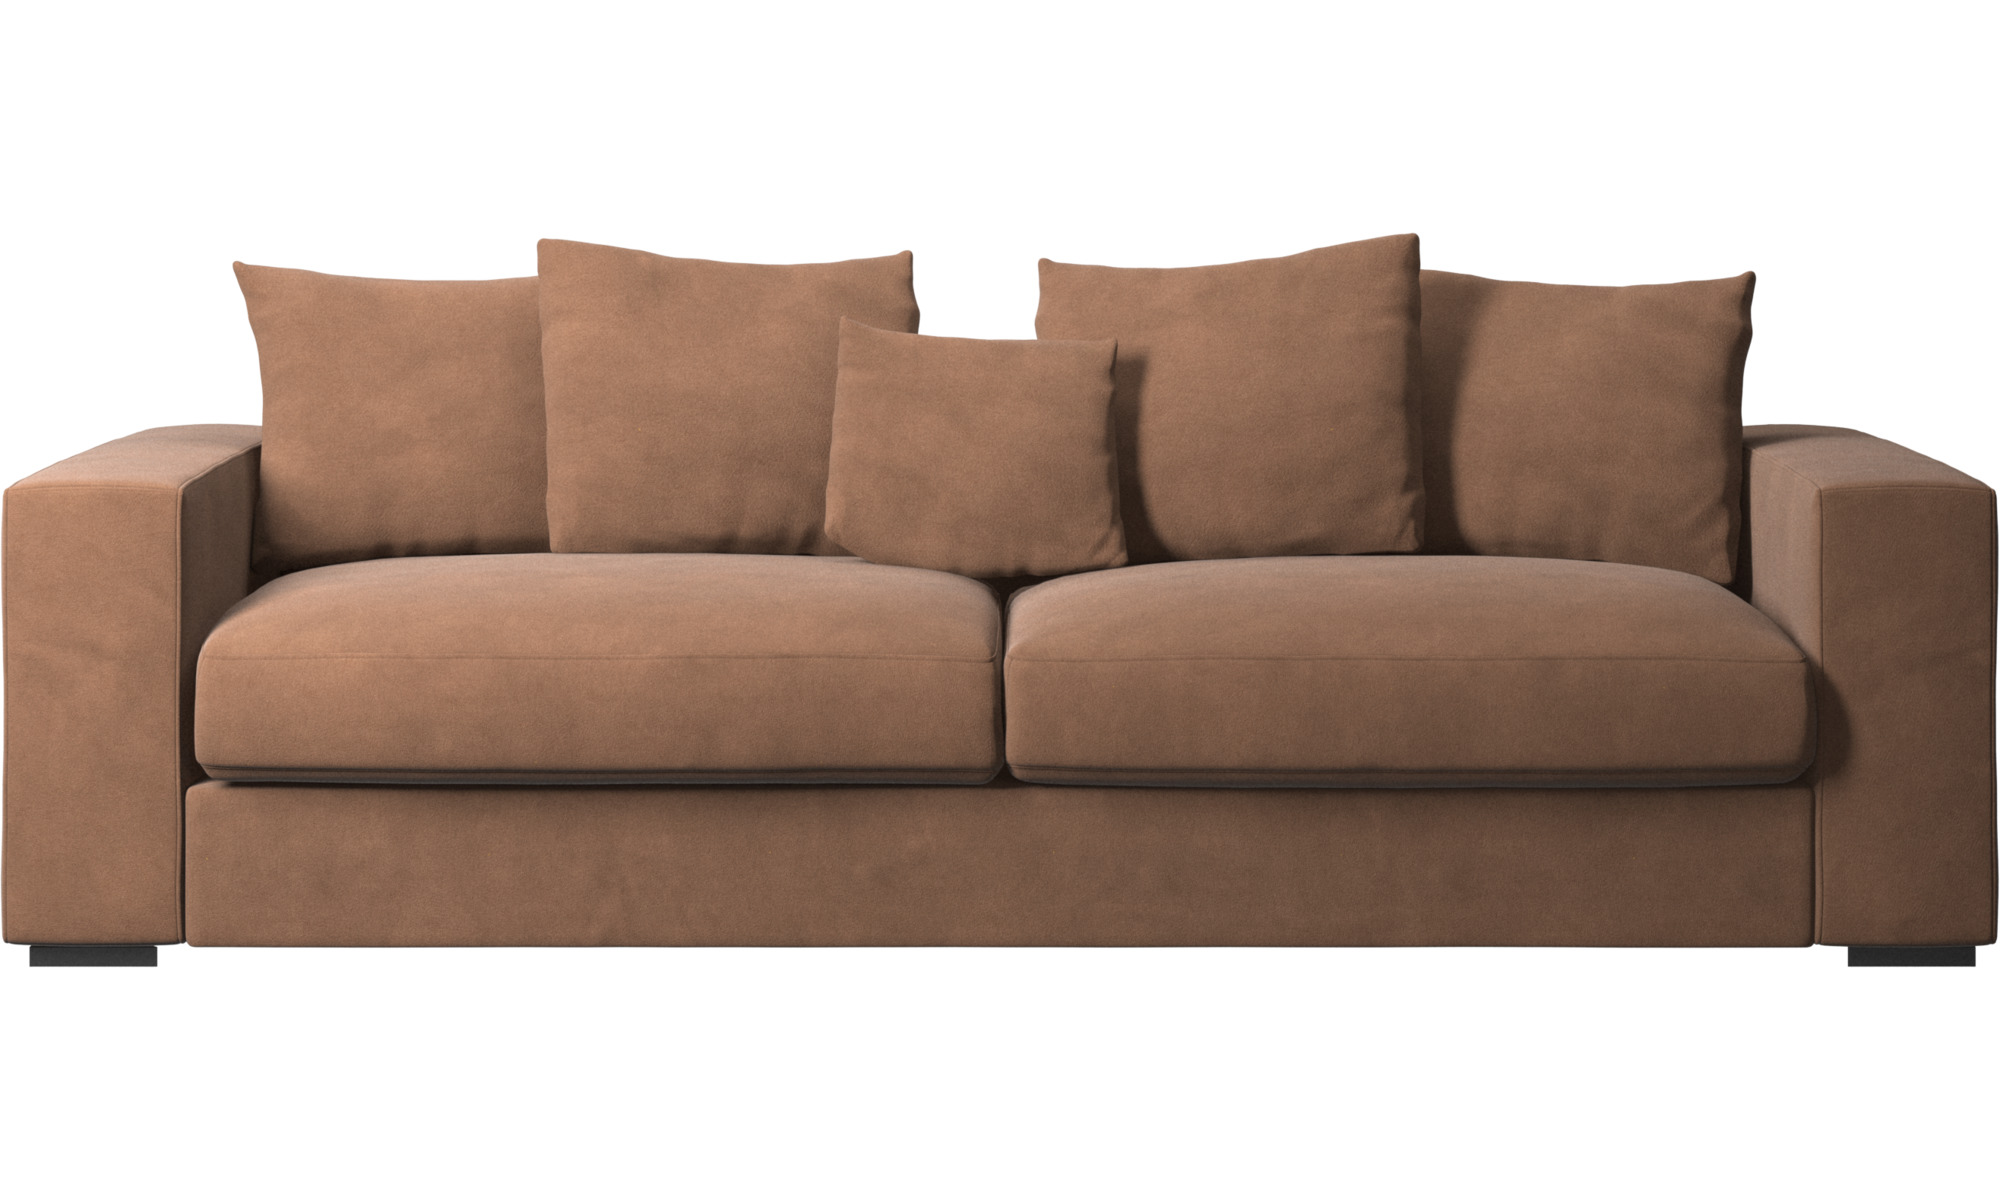 3 seater sofas cenova sofa boconcept Couches and loveseats